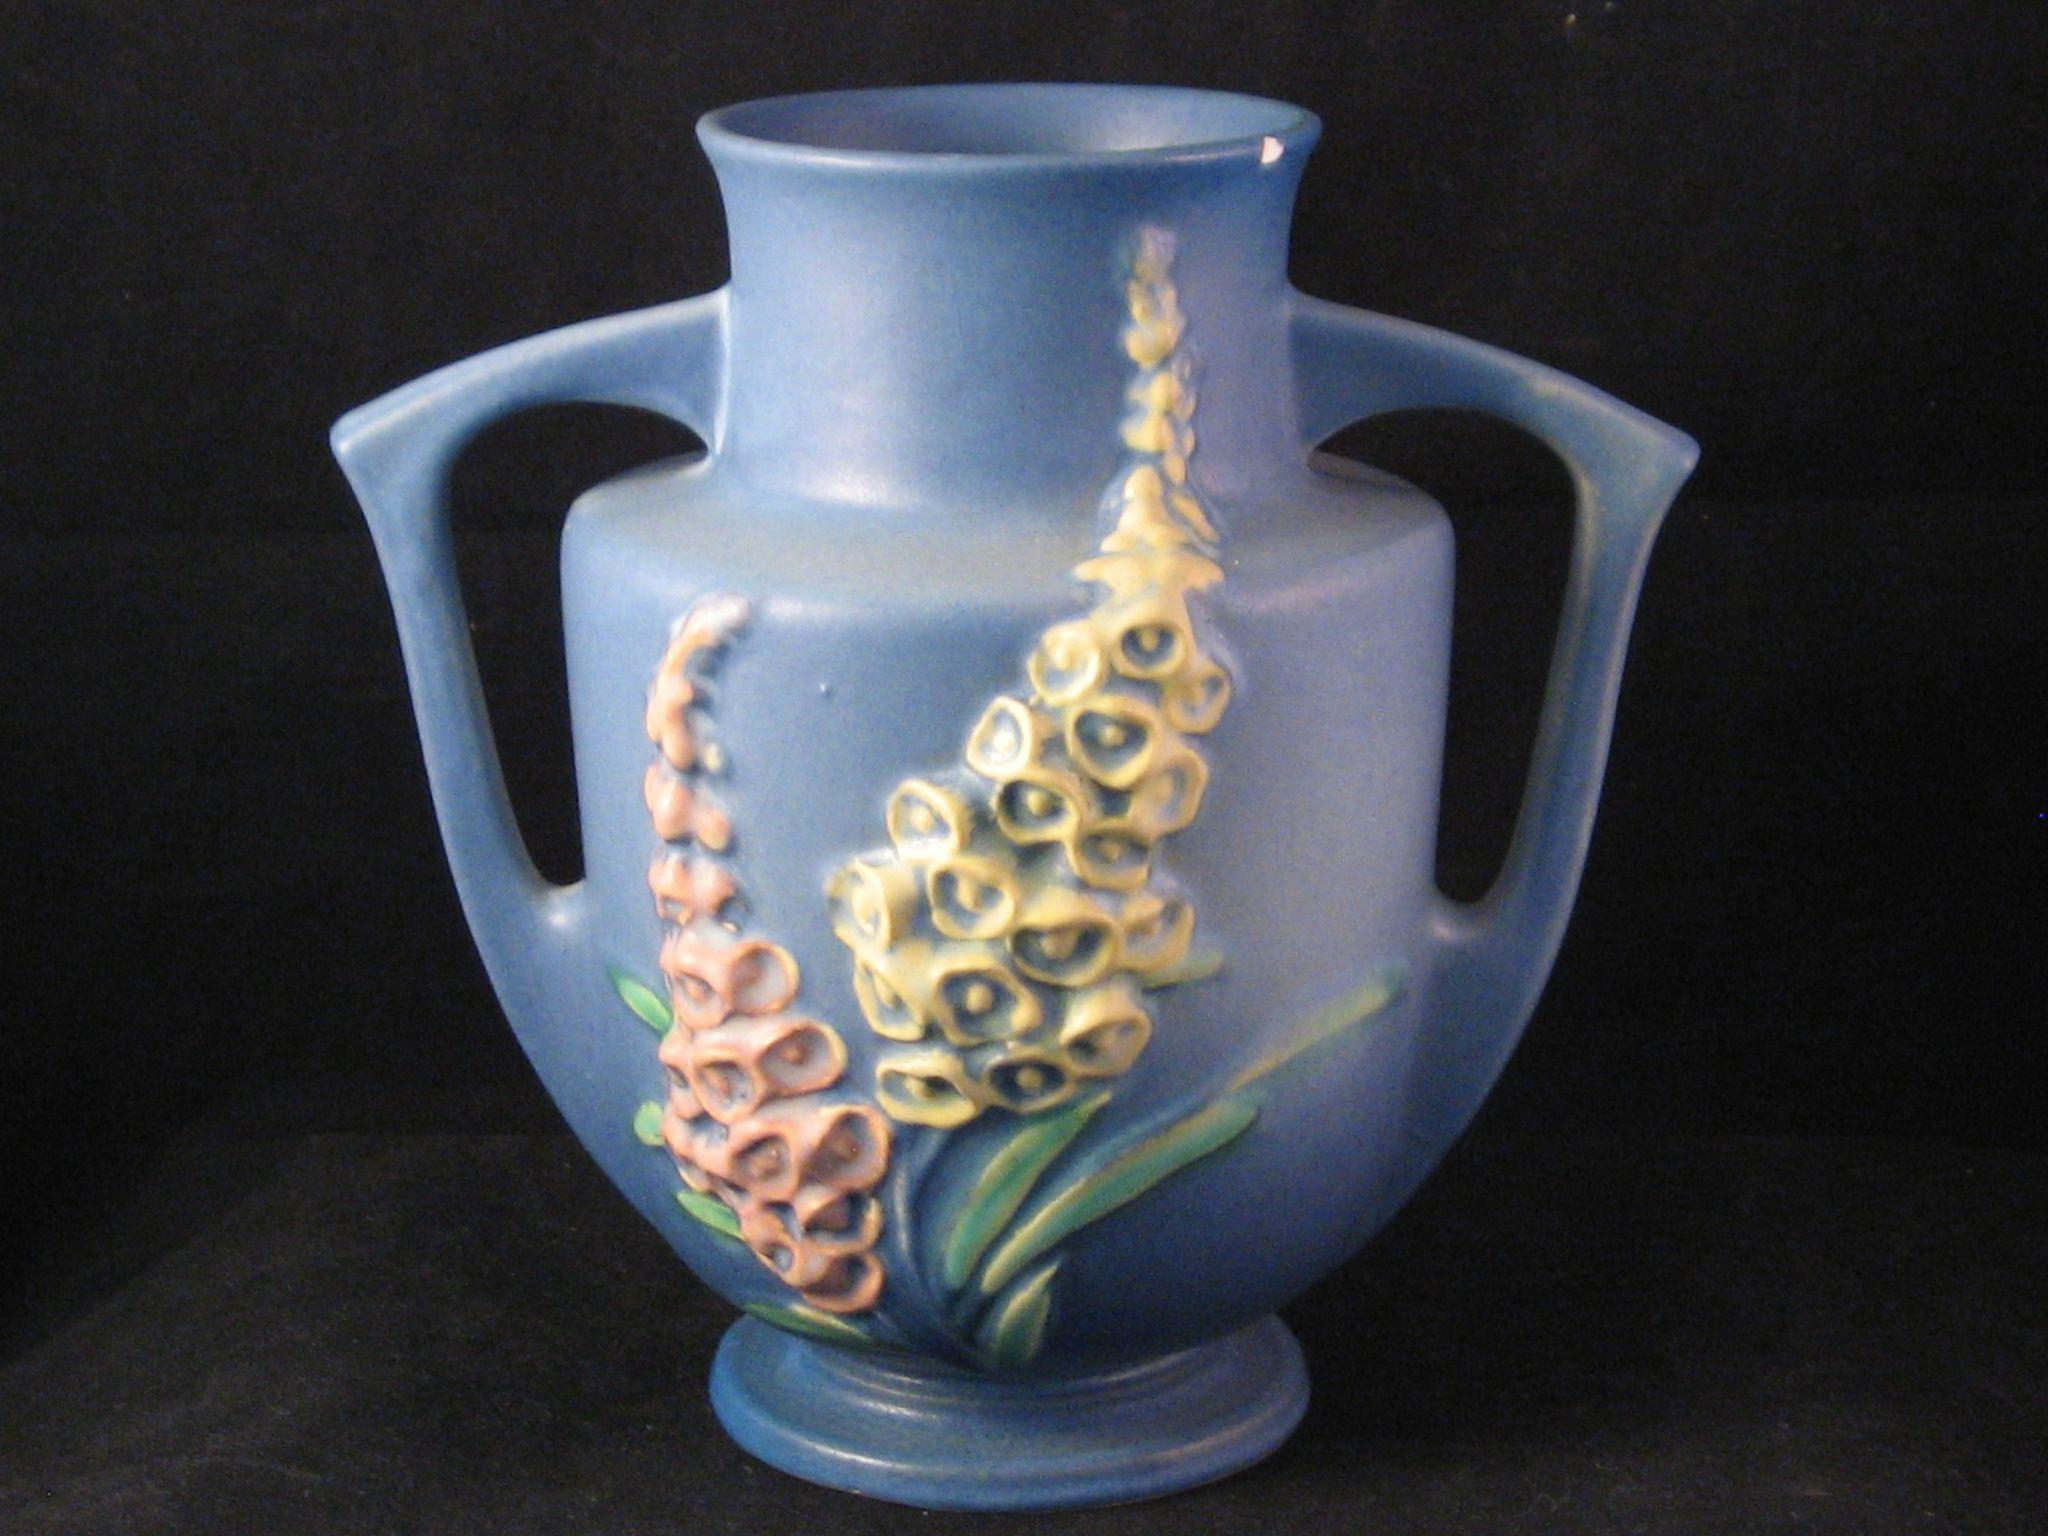 1943 Roseville Pottery Blue With Yellow And Pink Foxglove Vase 46 7 From The7hillscollector On